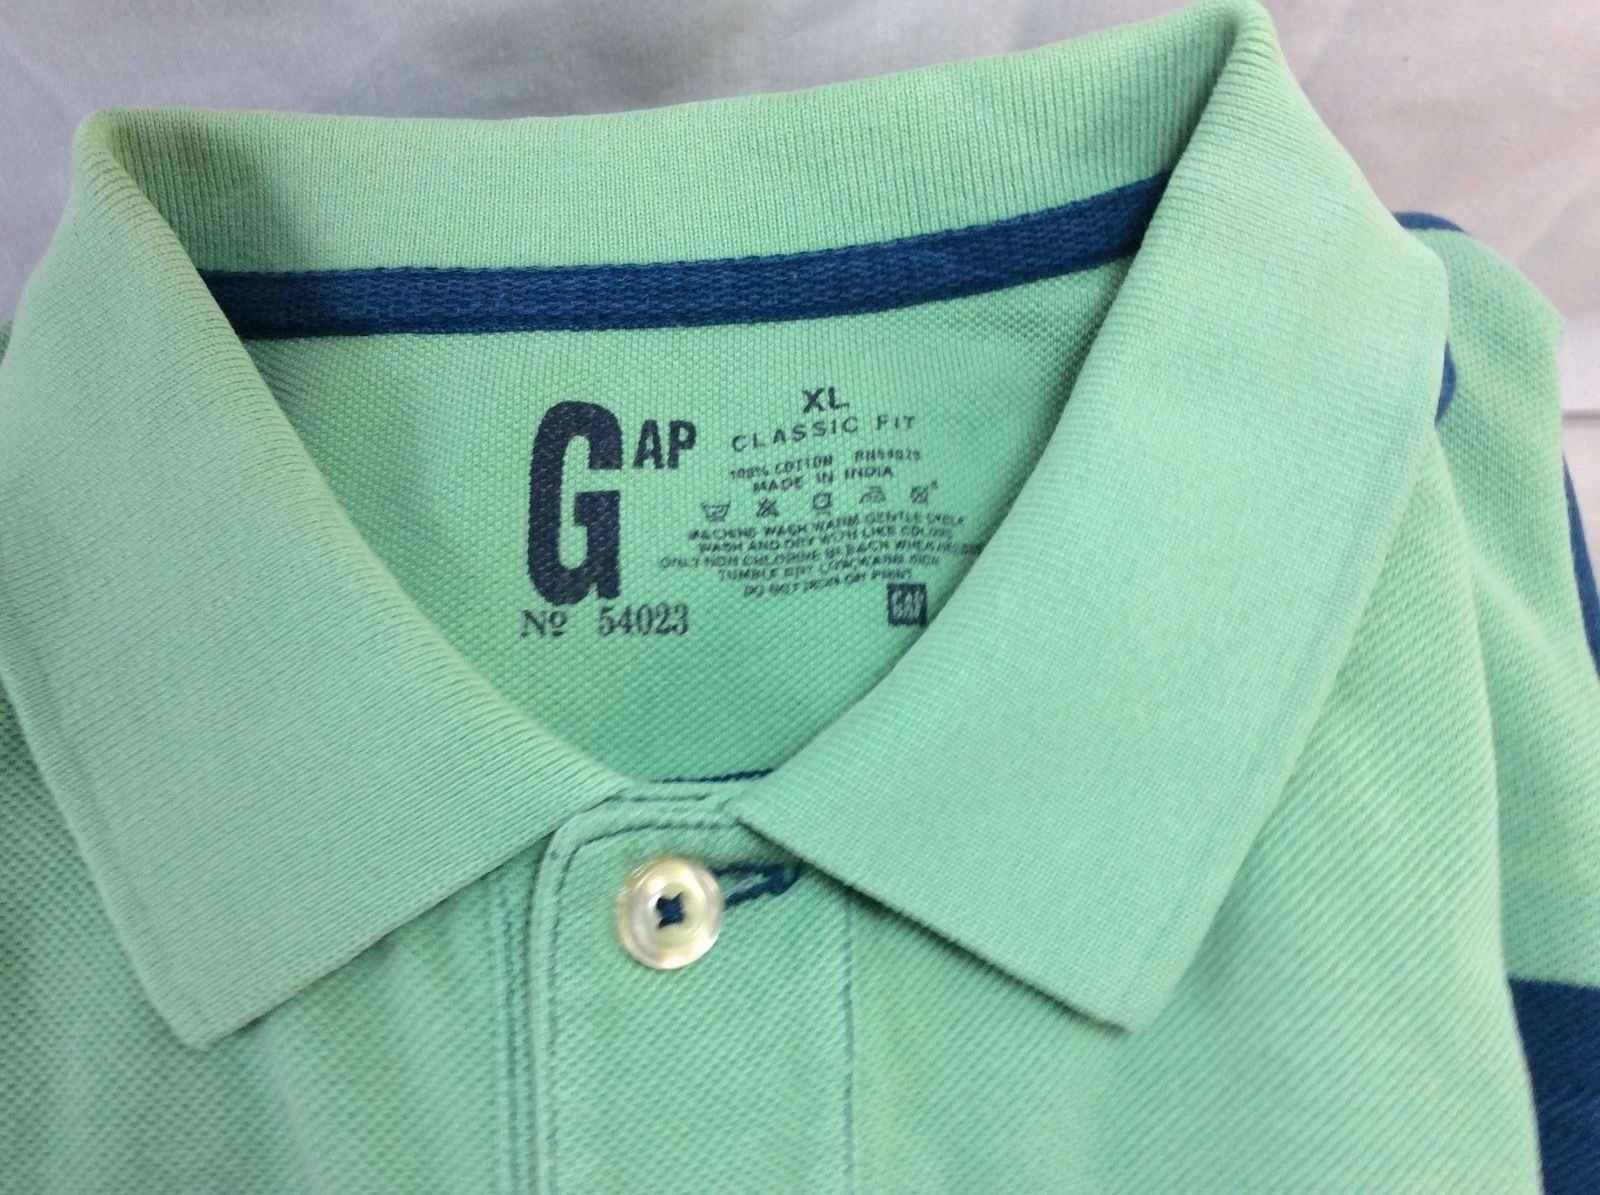 Men Polo Shirt GAP XL Classic Fit, 100% Cotton, Striped Blue and Green. image 2